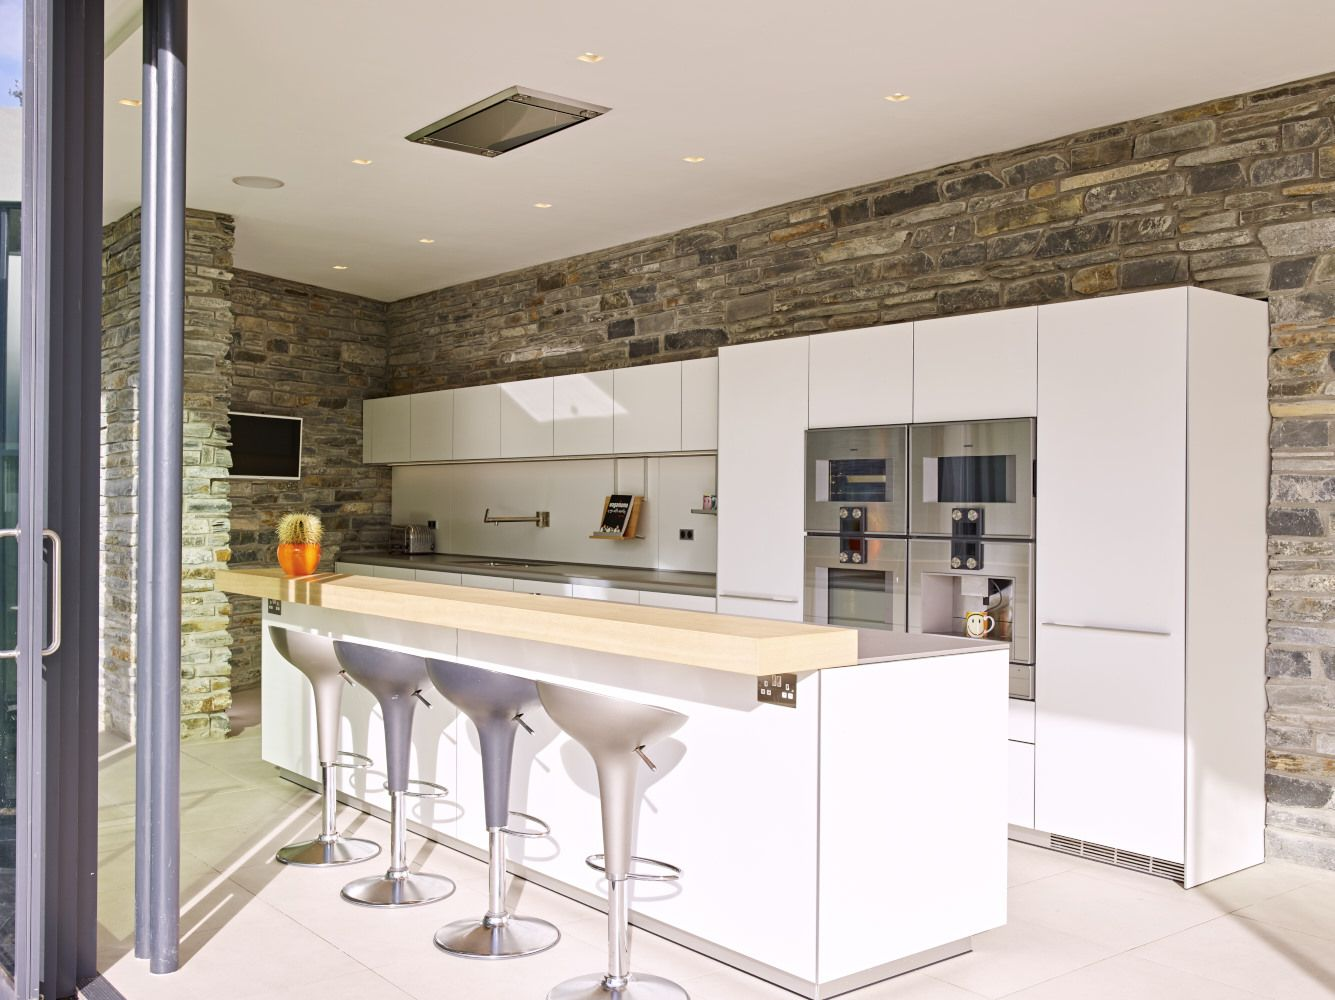 bulthaup b3 white kitchen against contrasting stone